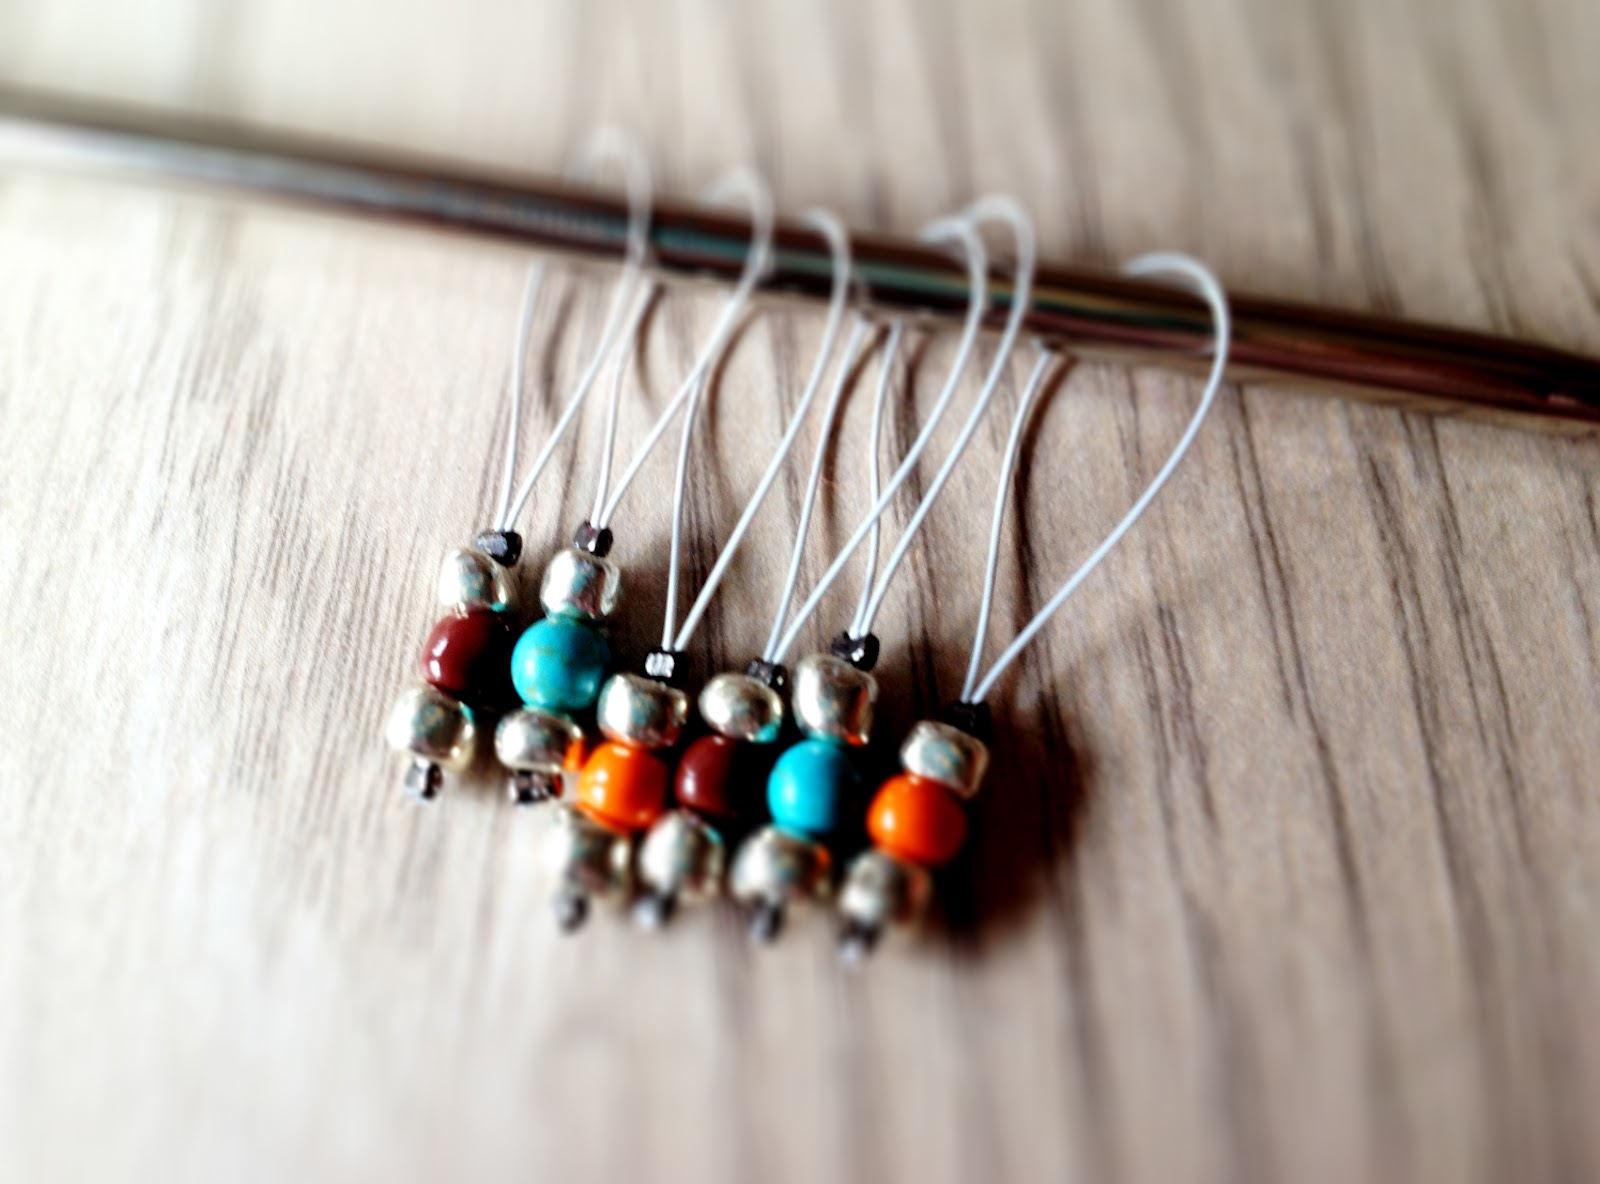 Knitting Stitch Markers How To Make : Studio desiloop make snag free knitting stitch markers